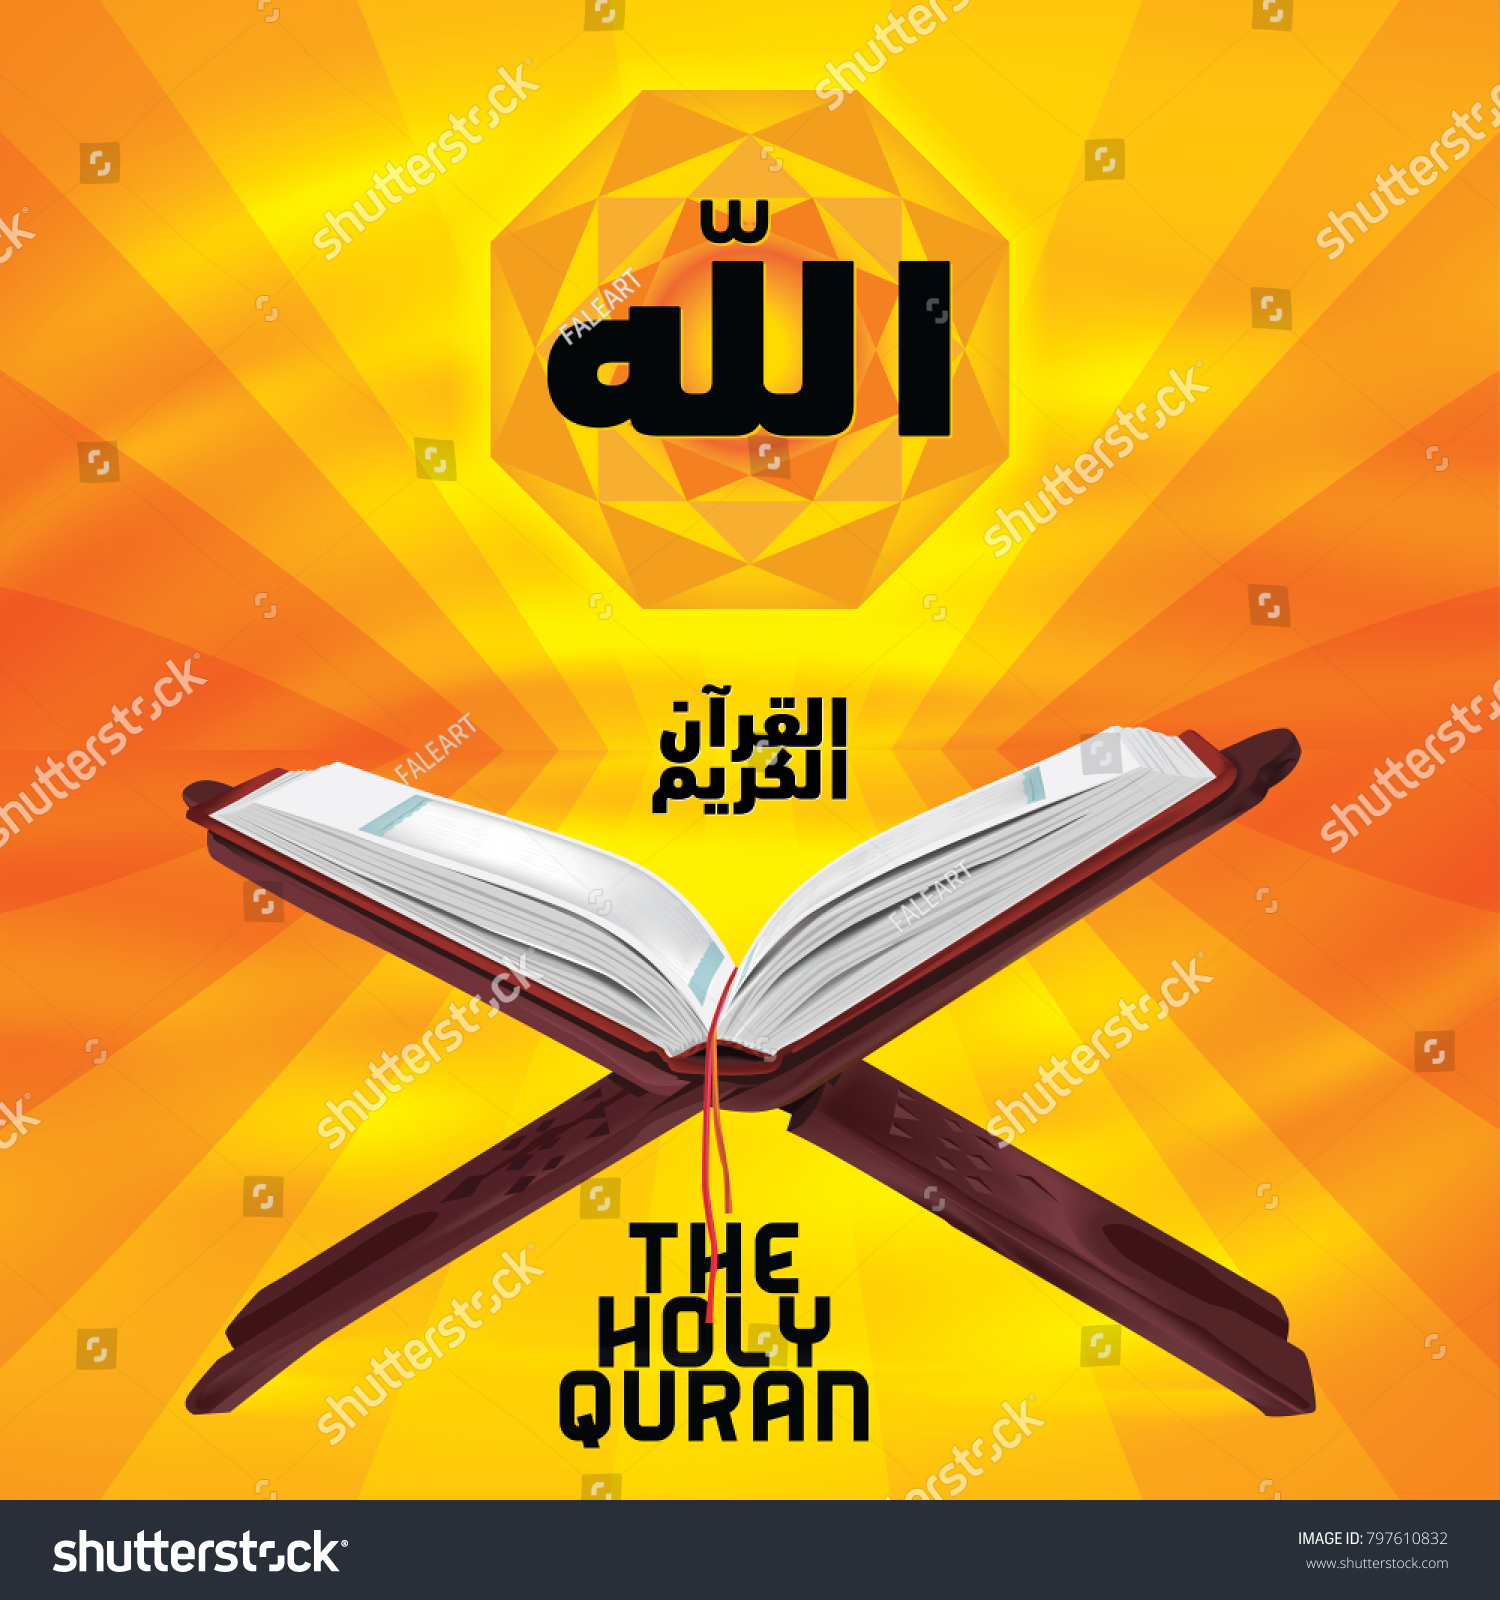 Symbol holy book quran lafadz allah stock vector 797610832 the symbol of the holy book of the quran with the lafadz of allah biocorpaavc Gallery